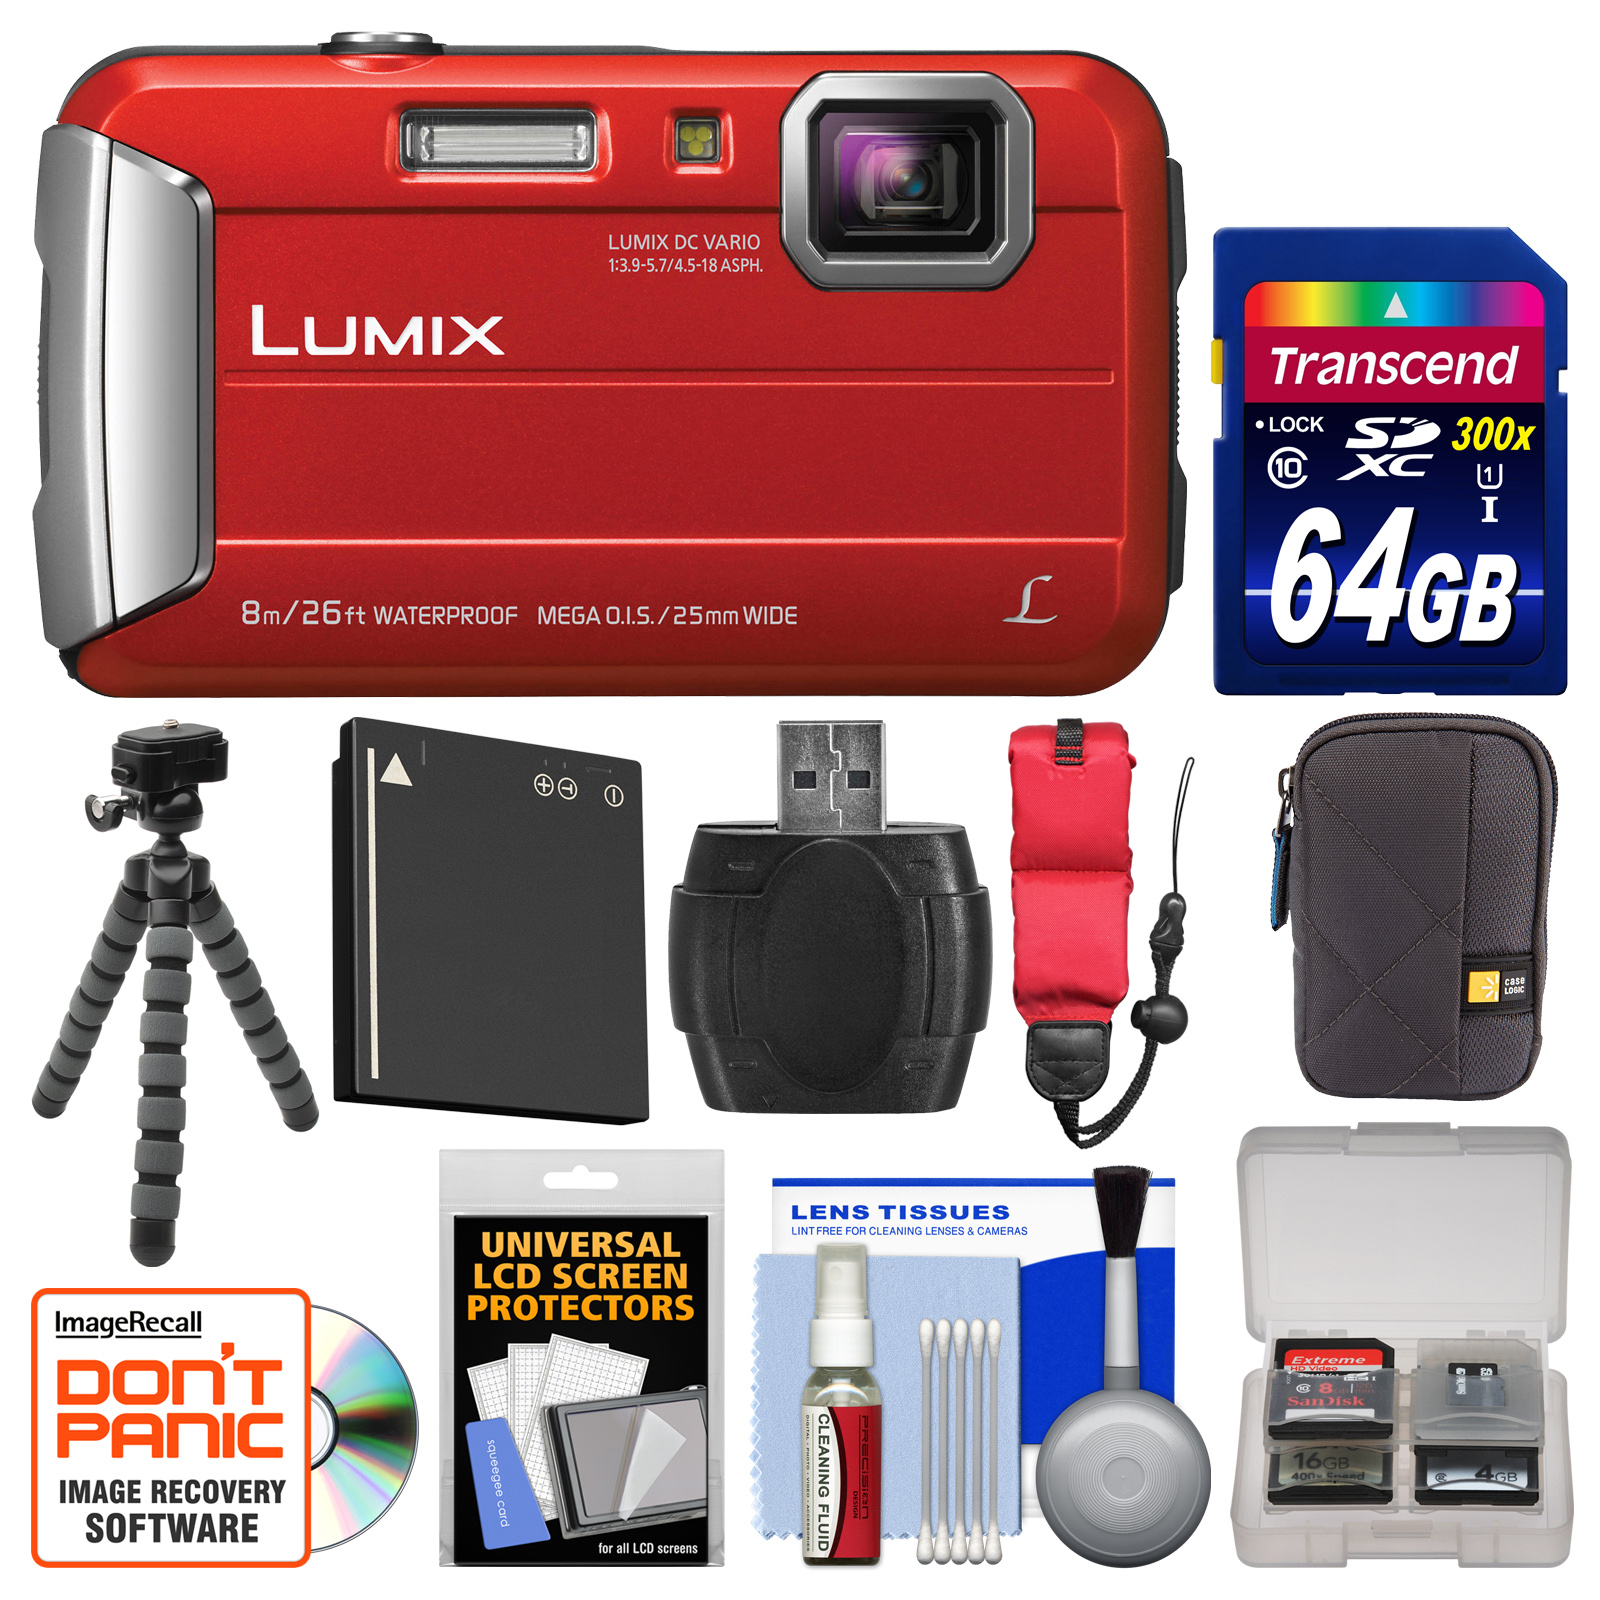 Panasonic Lumix DMC-TS30 Tough Shock & Waterproof Digital Camera (Red) with 64GB Card +